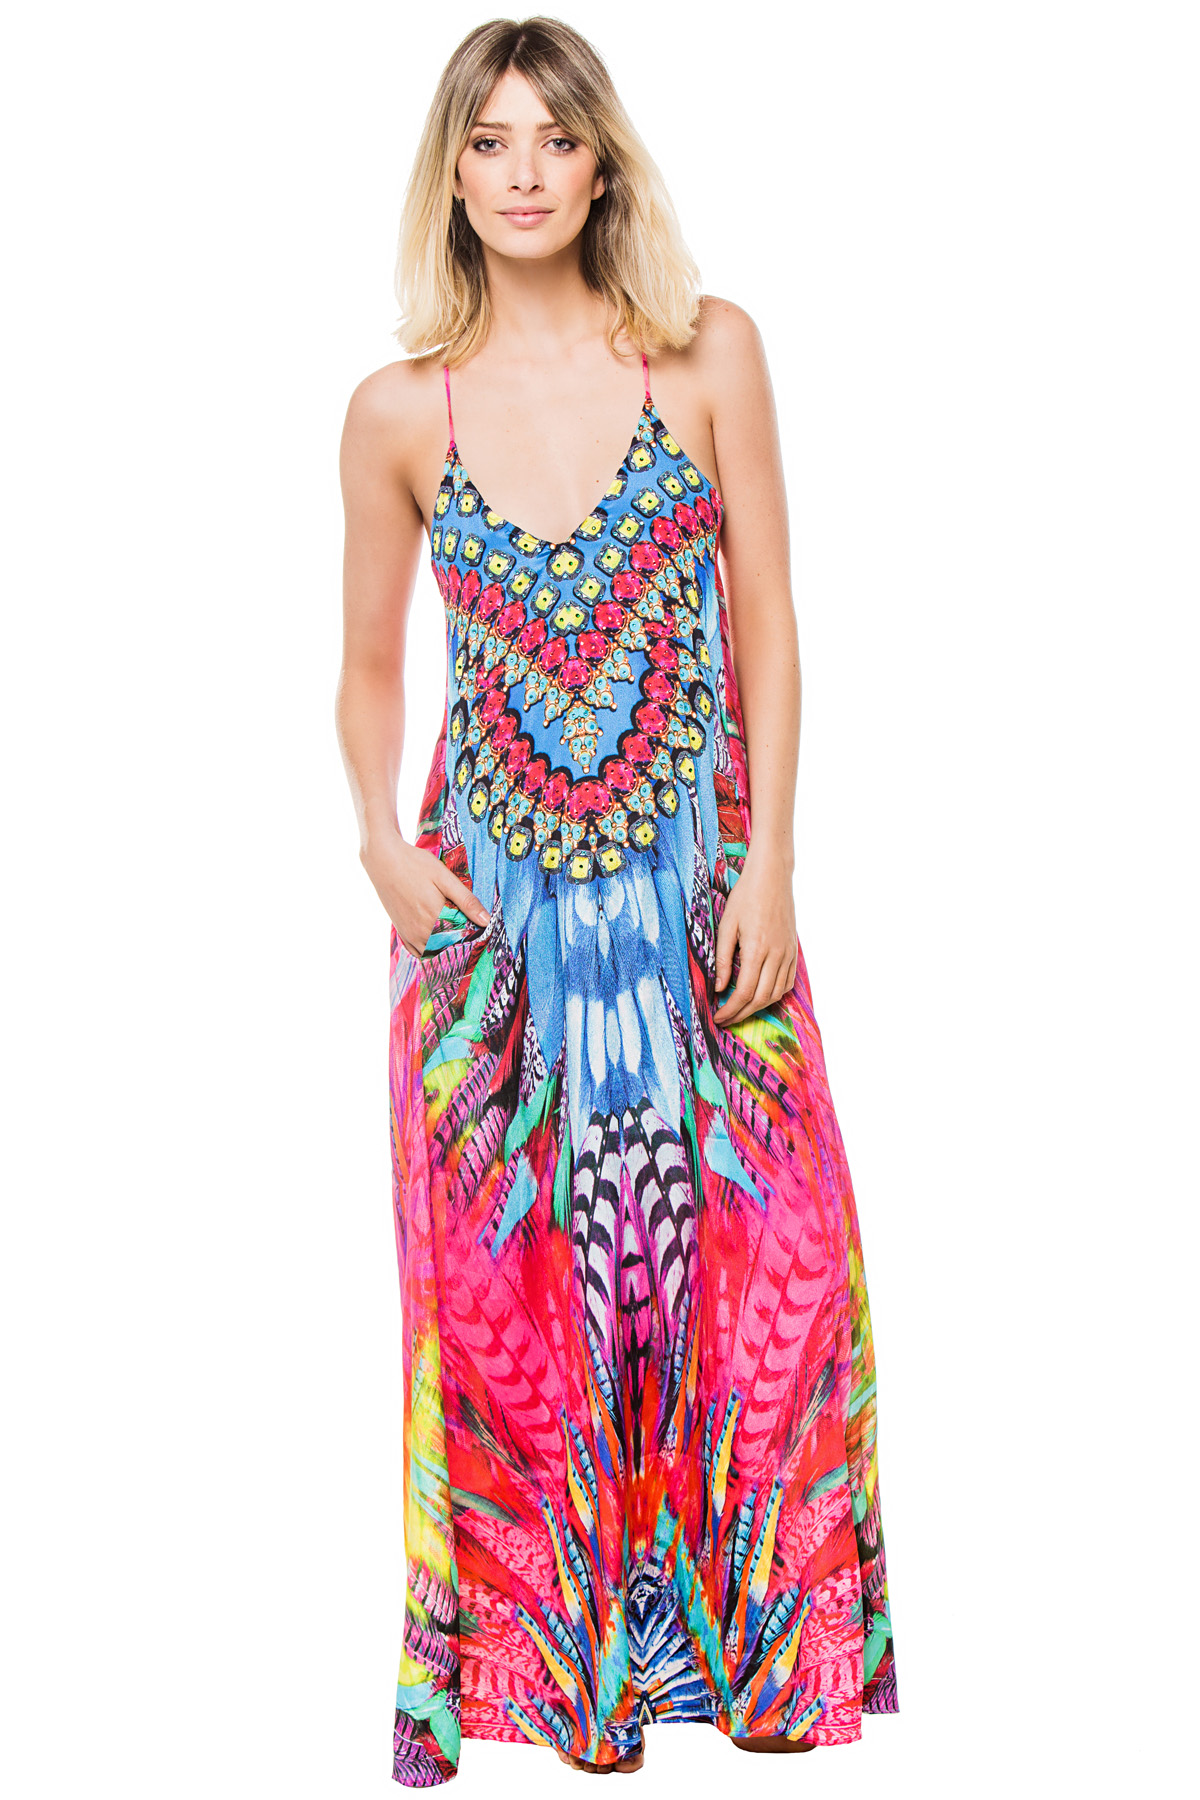 Feather Print Maxi Dress - Apache Feather